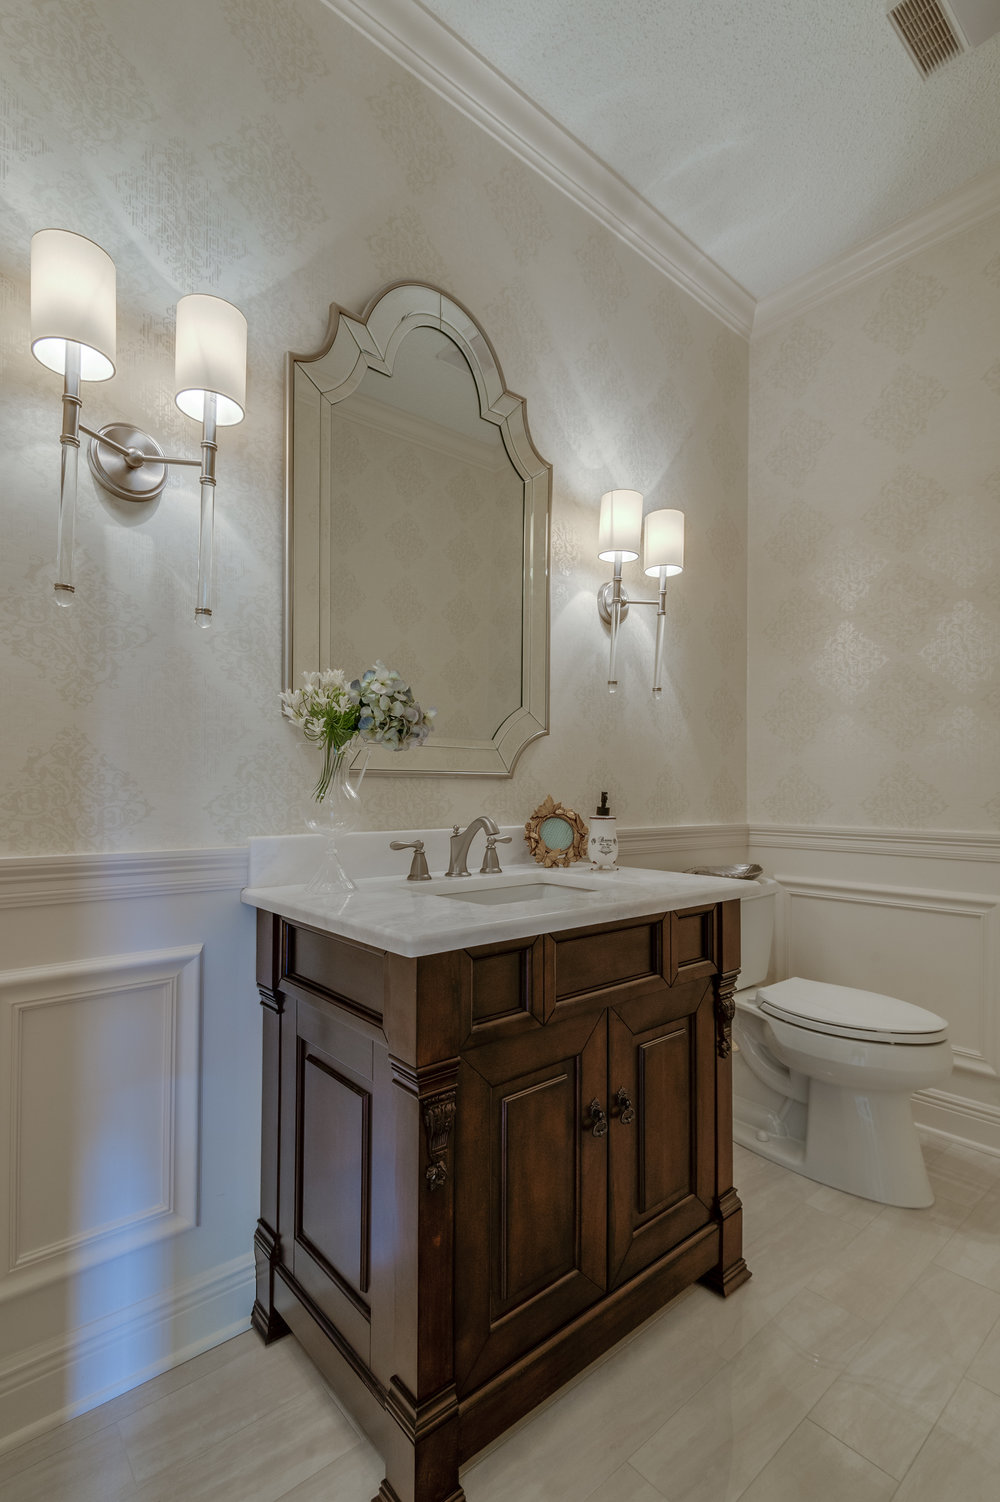 KHB Interiors classic powder room marble uptown interior decorator old metairie new orleans interior designer .jpg